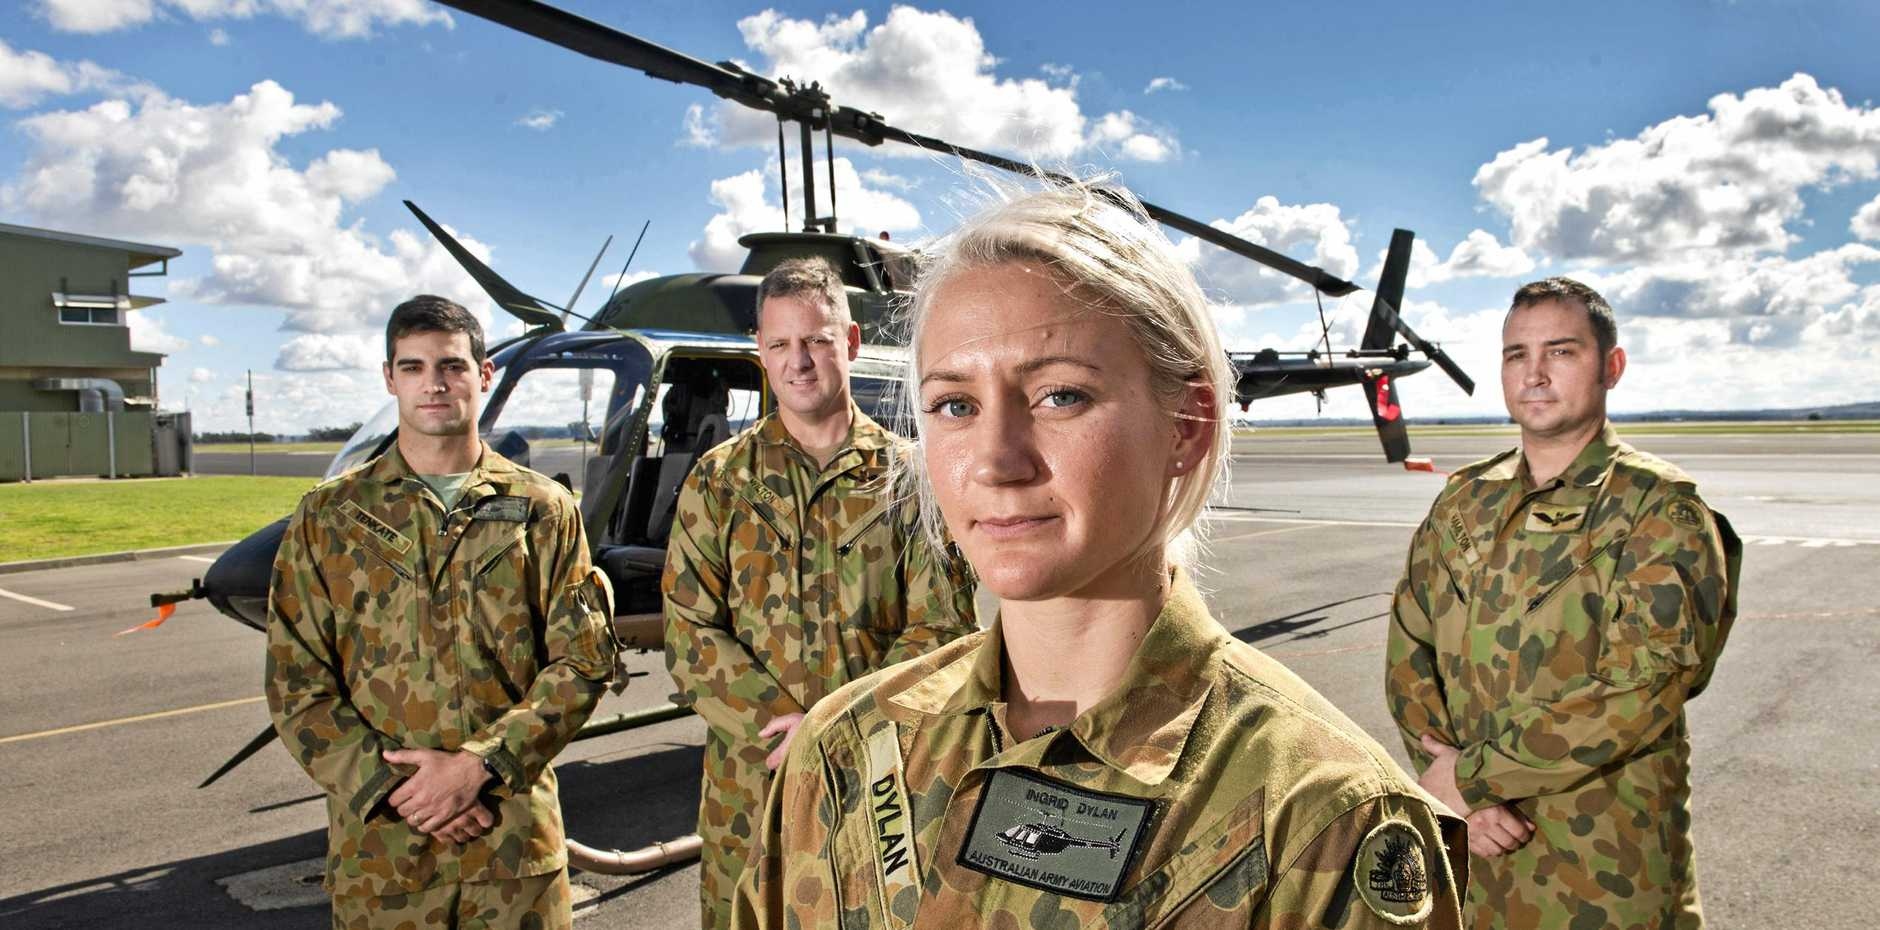 RECOGNISED: The four Australian Defence Force members (from left) Lt Michael Tenkate, Capt Warren Wilton, Second Lieutenant Ingrid Dylan and Capt Gary Hamilton, pictured here in 2016, were recognised for their role at the scene at of a fatal traffic crash last year.